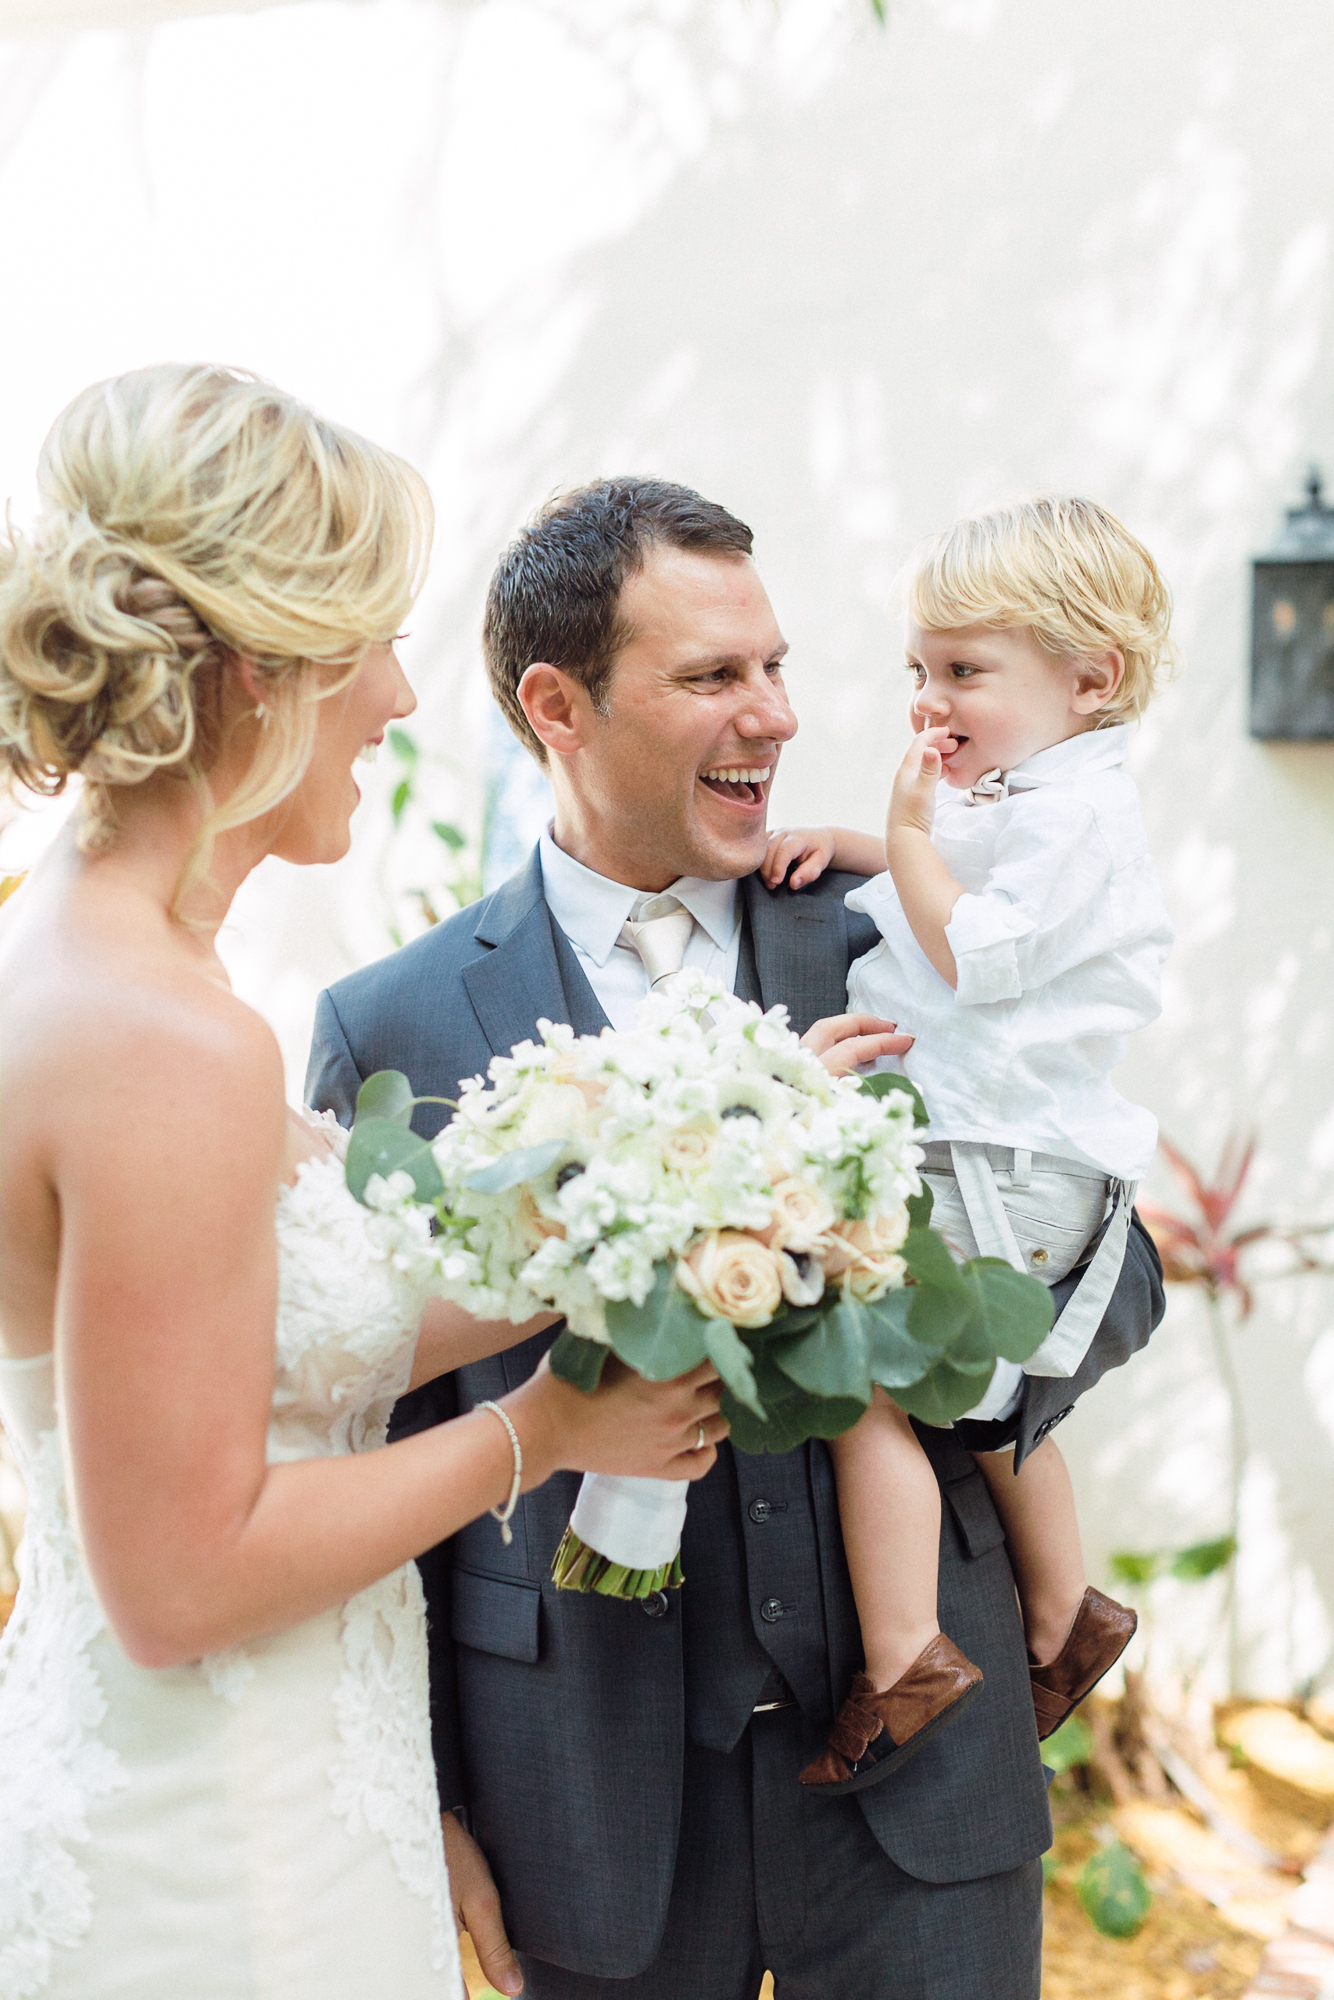 Groom carries couple's son while bride smiles at them holding her bouquet.